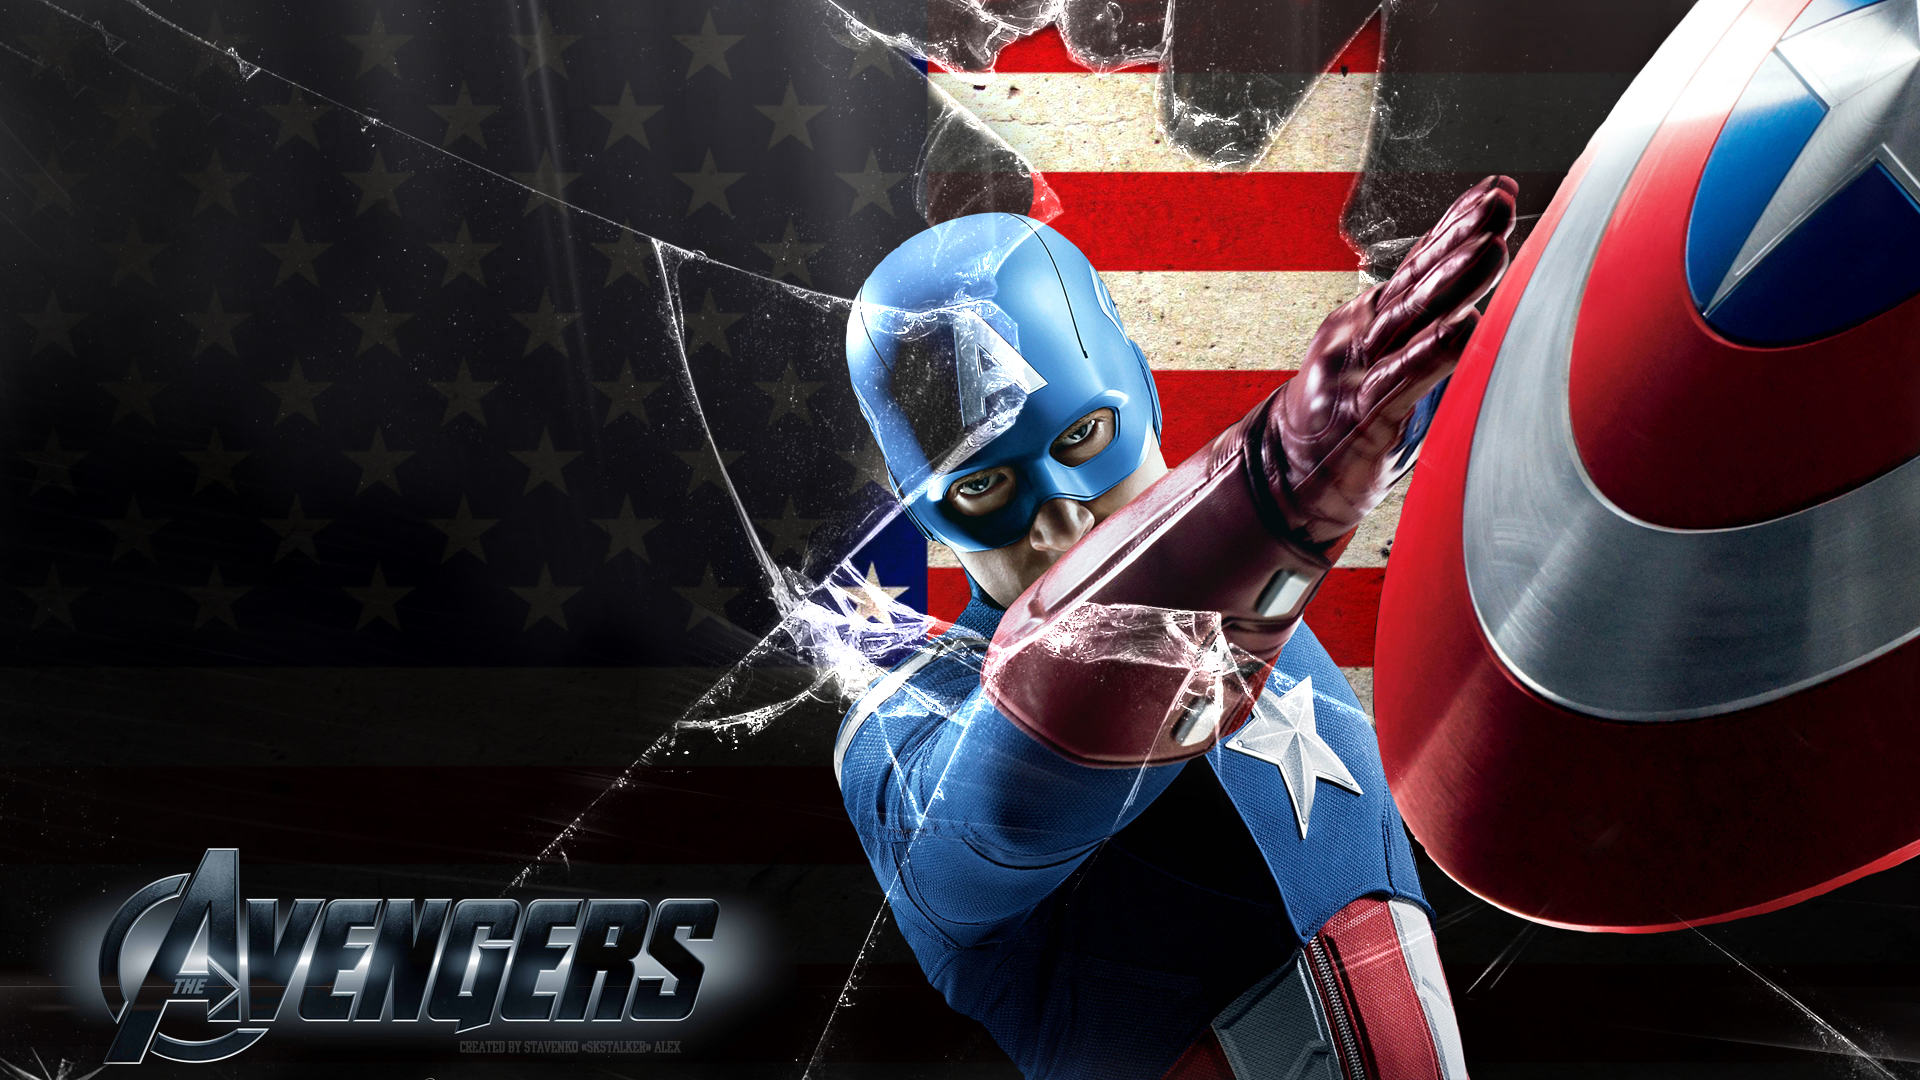 Hd wallpaper of captain america - Captain America Wallpaper 1080p By Skstalker Fan Art Wallpaper